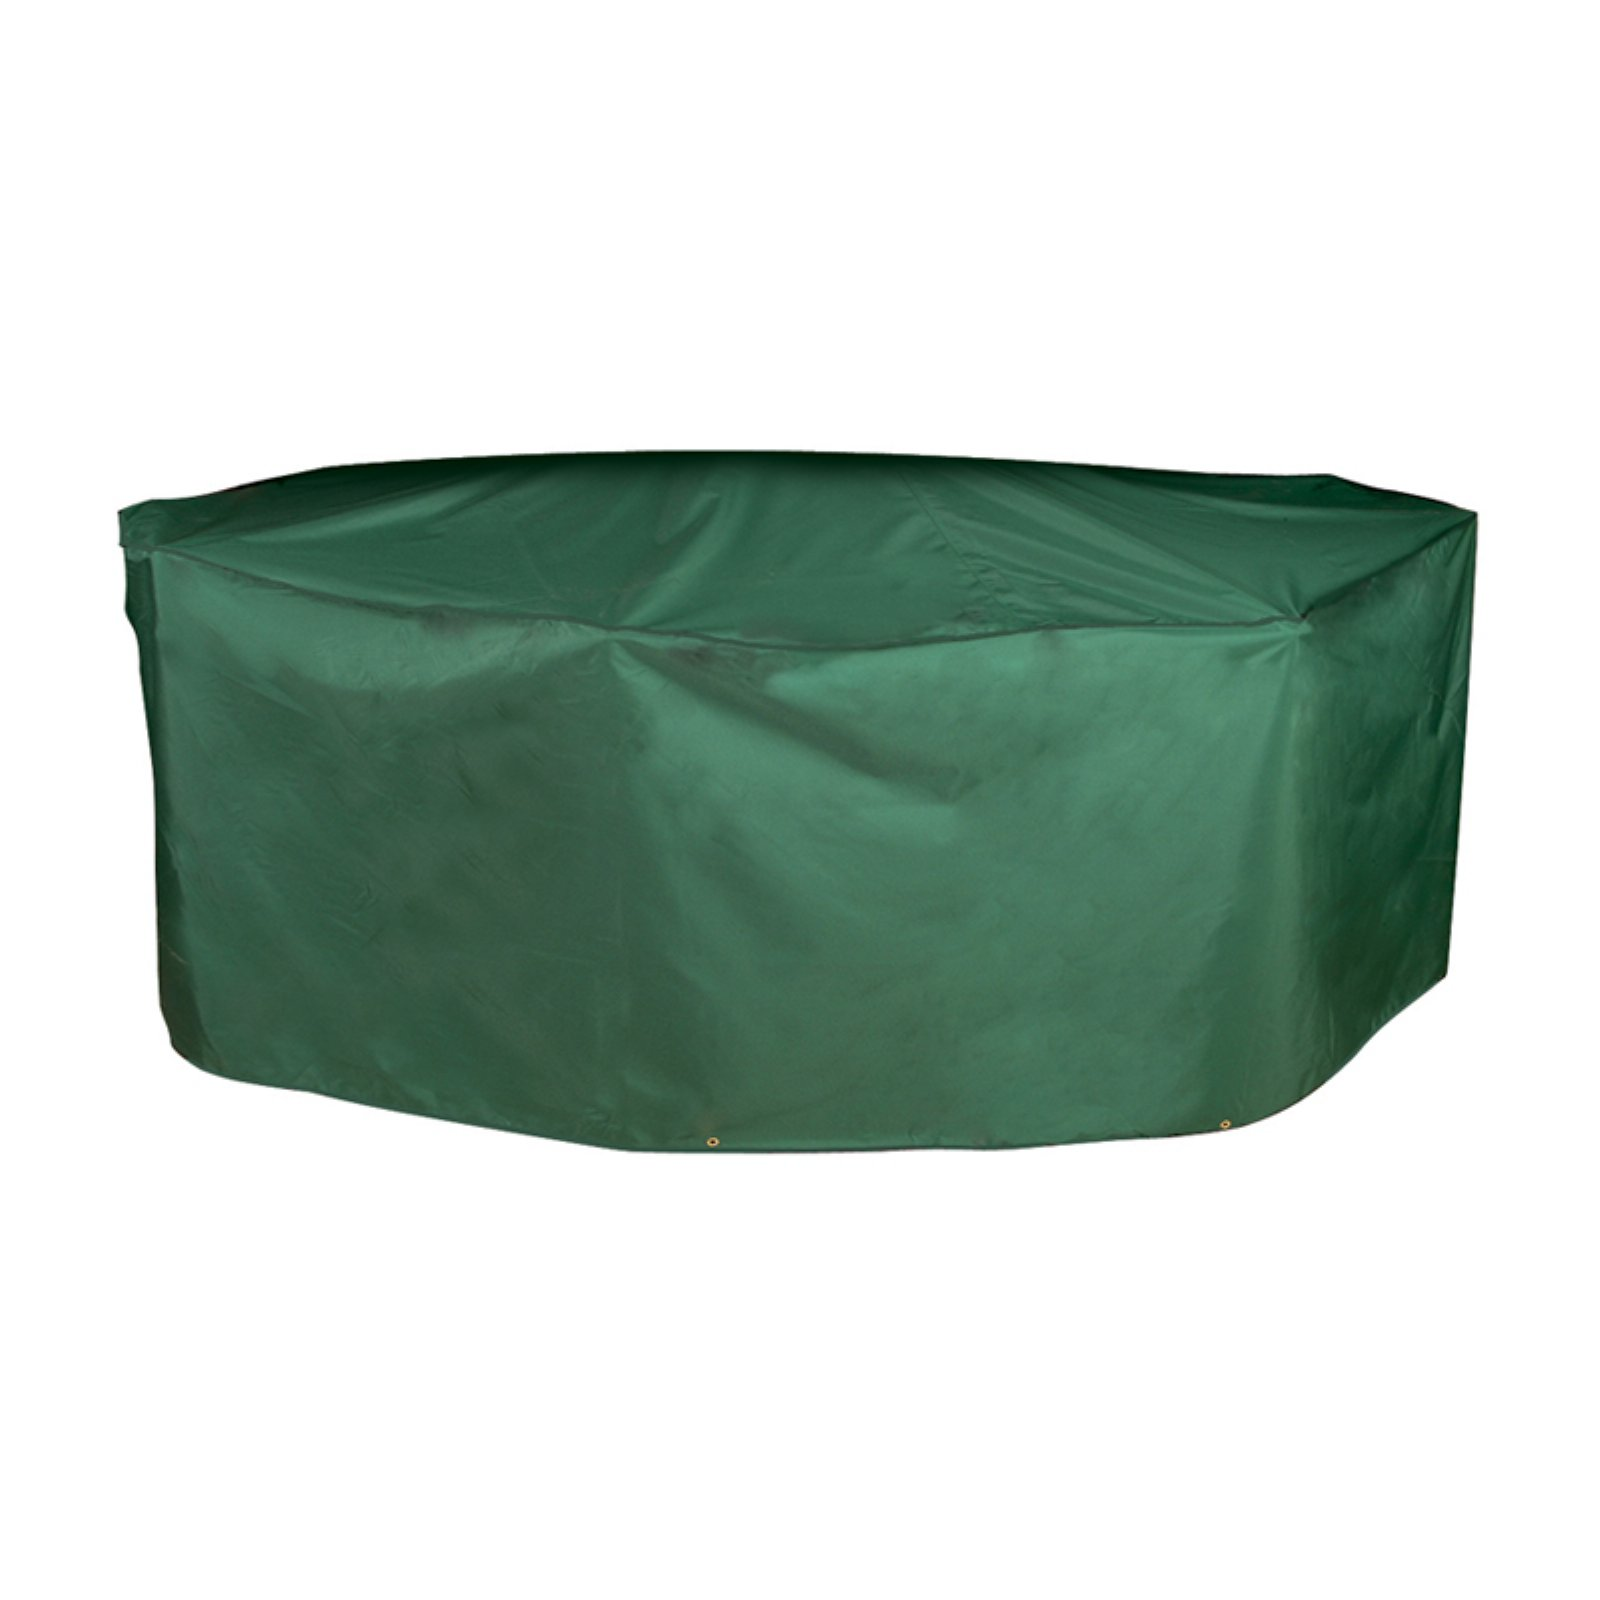 Bosmere C537 Oval Rectangular Table And Chairs Cover 126 X 75 In Green